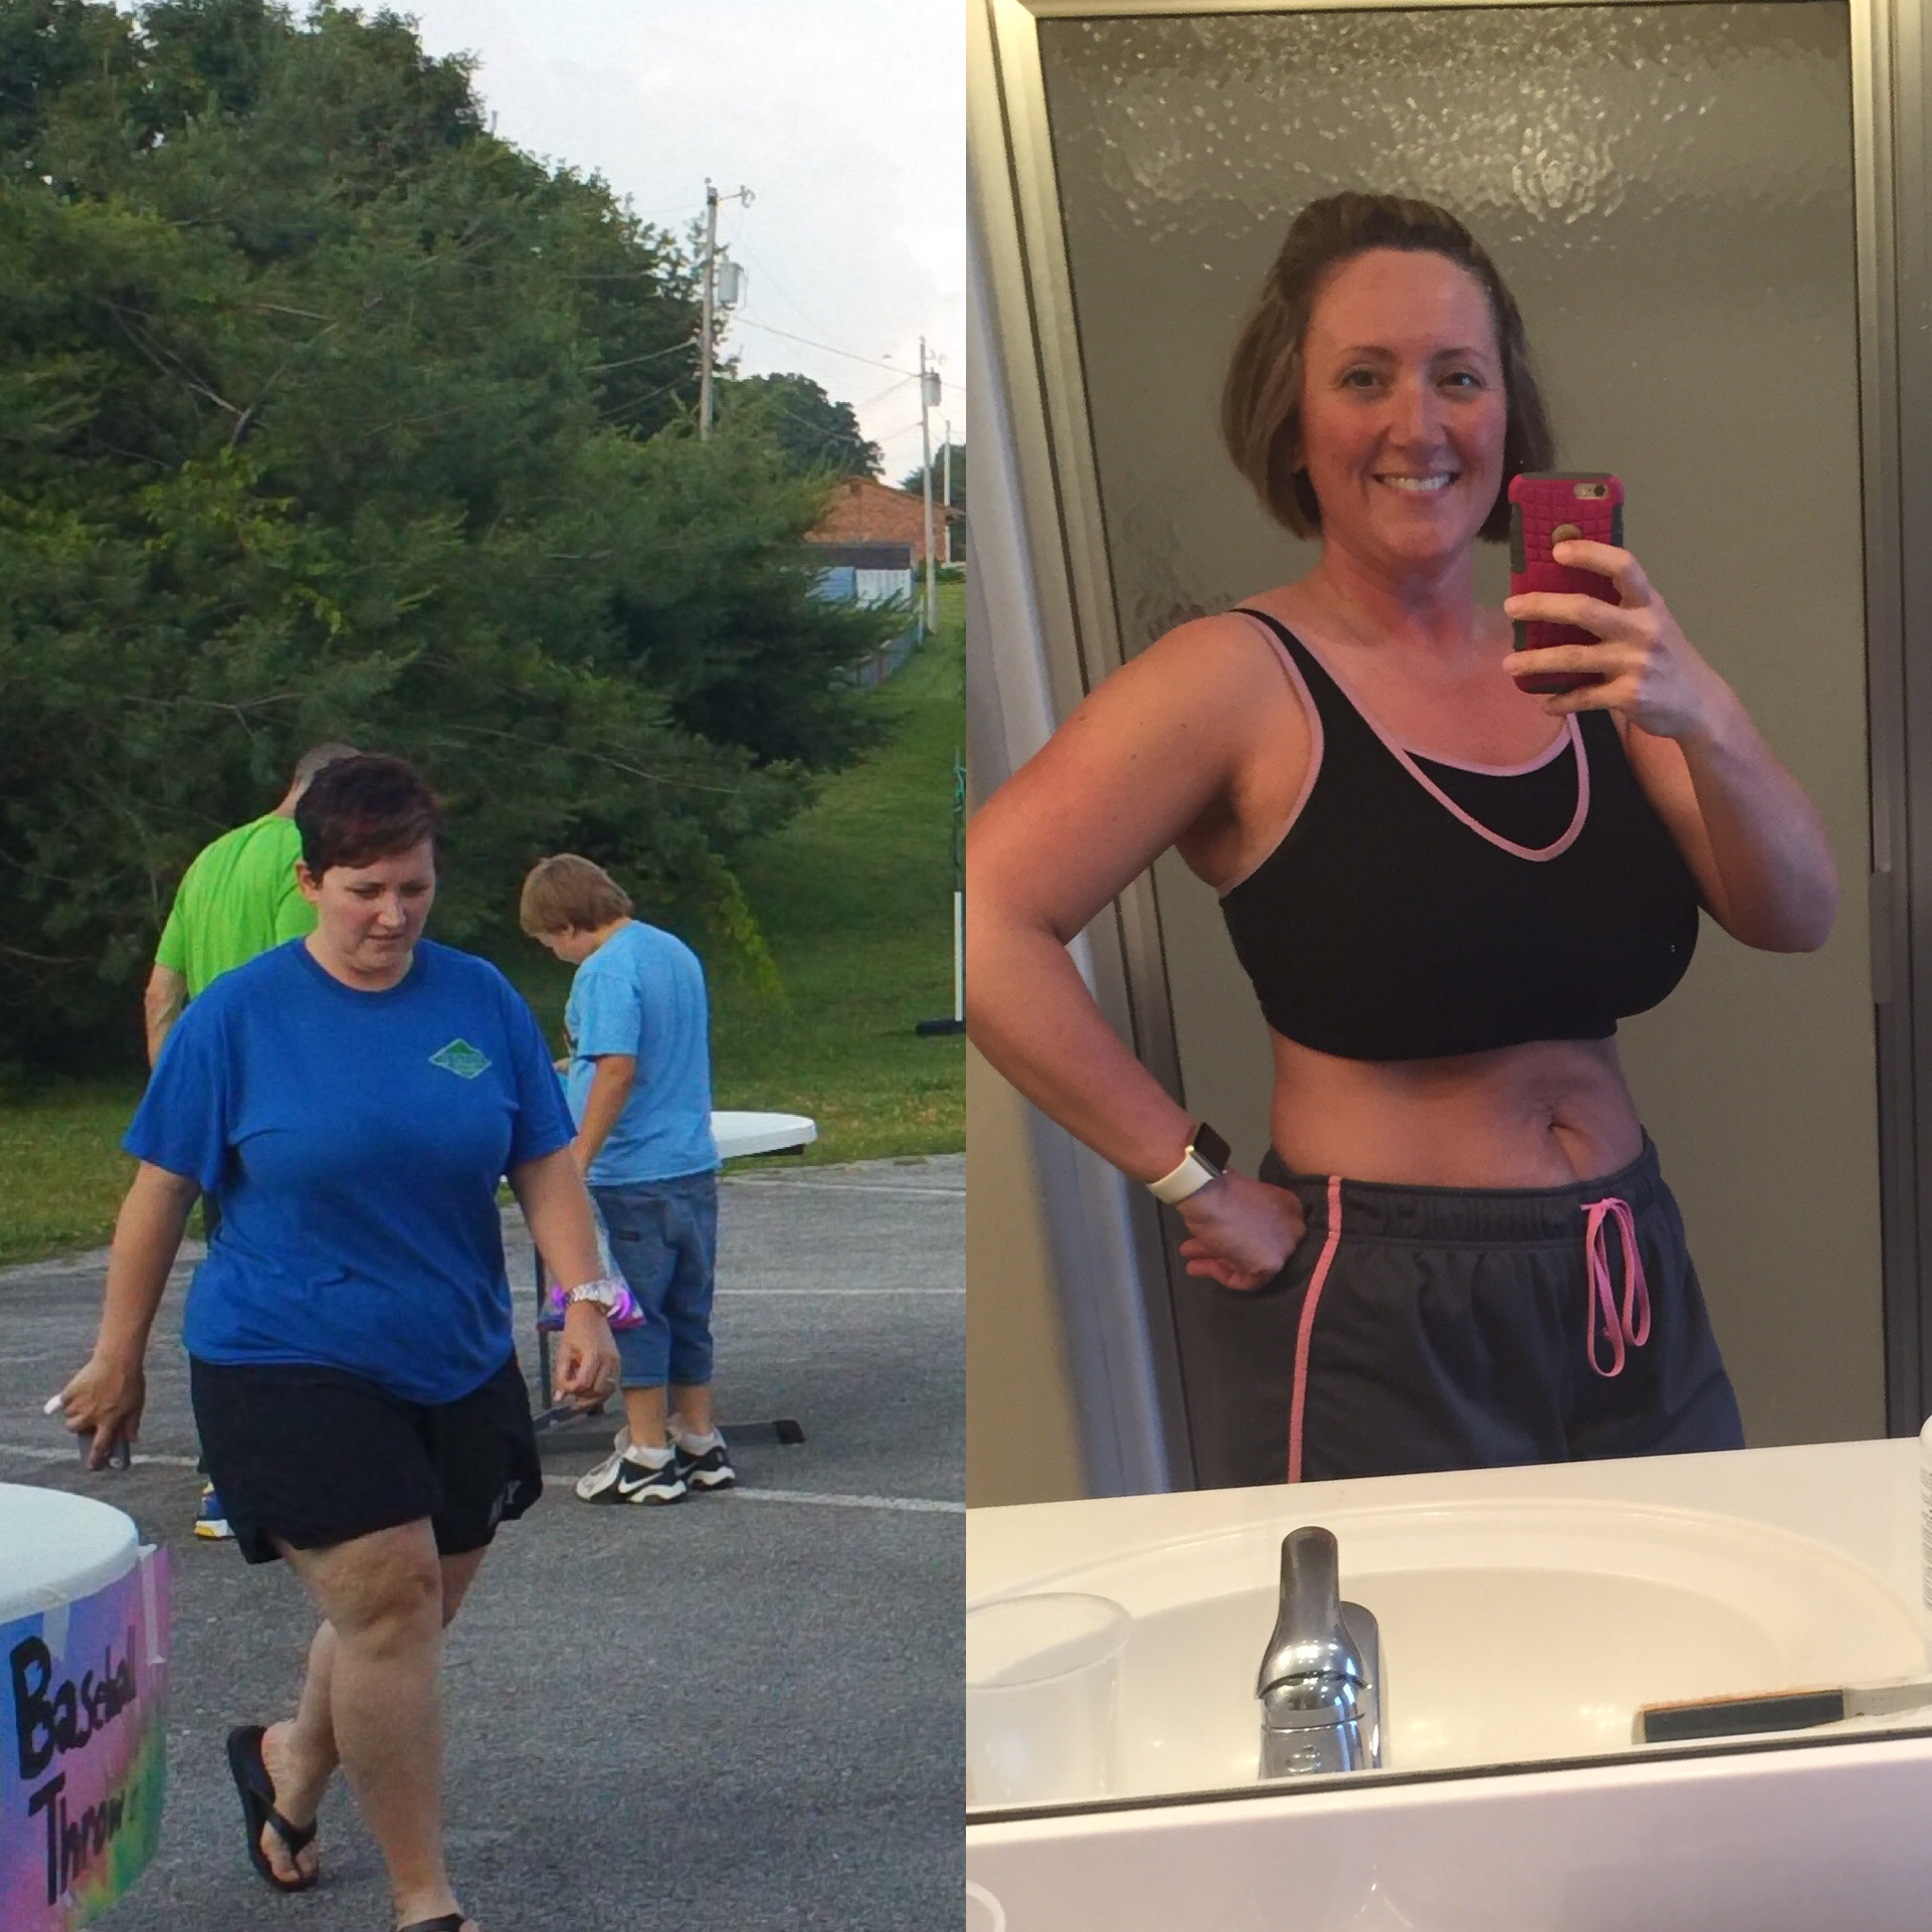 Great success story! Read before and after fitness transformation stories from women and men who hit weight loss goals and got THAT BODY with training and meal prep. Find inspiration, motivation, and workout tips | Not looking back!